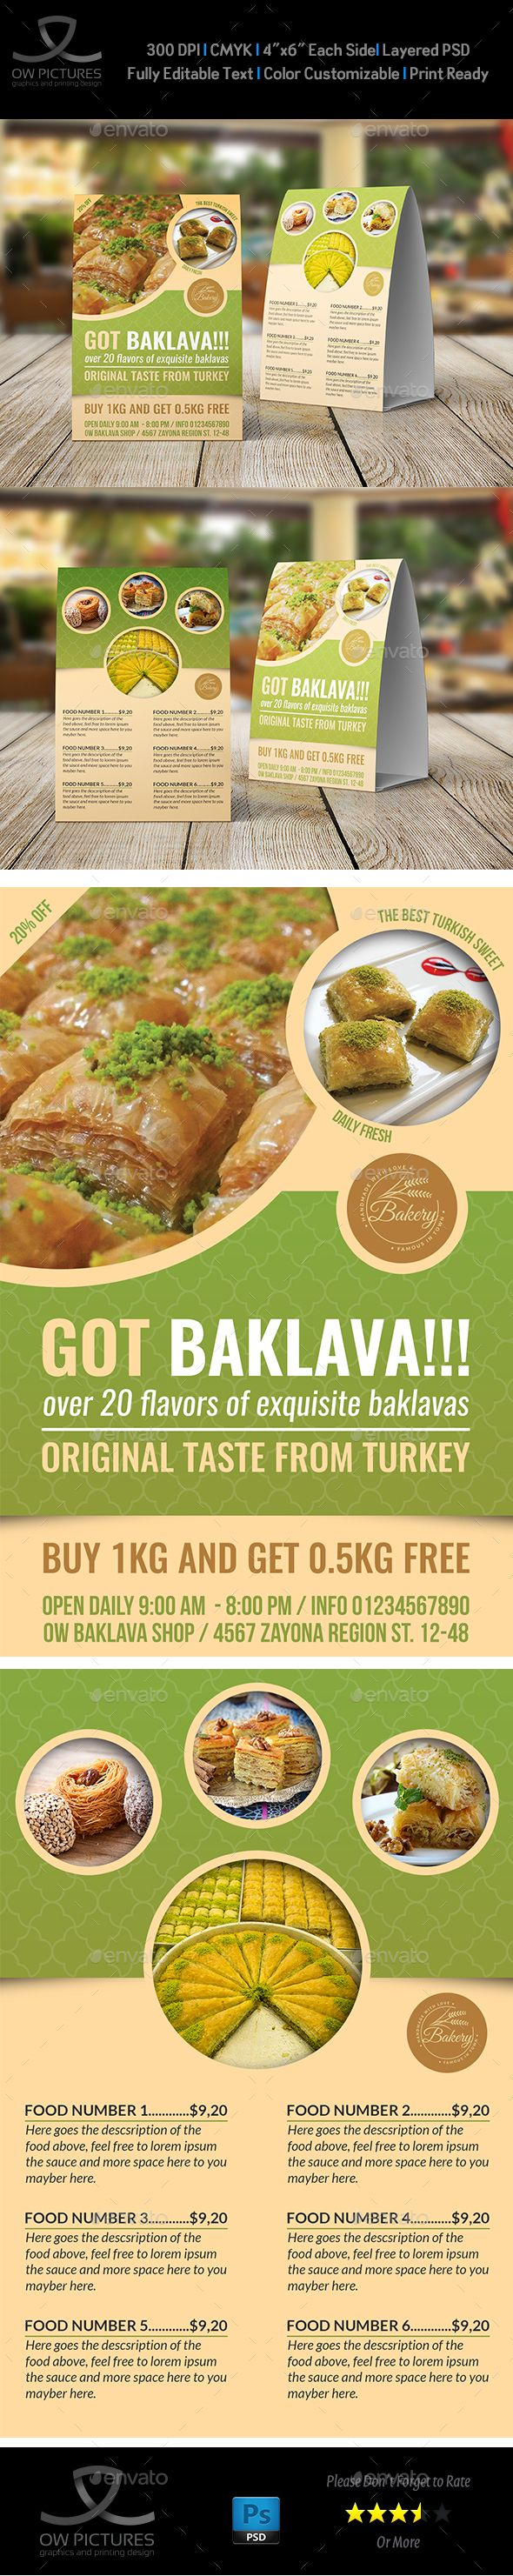 Baklava Table Tent Template & 46 best Table Tent Design images on Pinterest | Food menu template ...